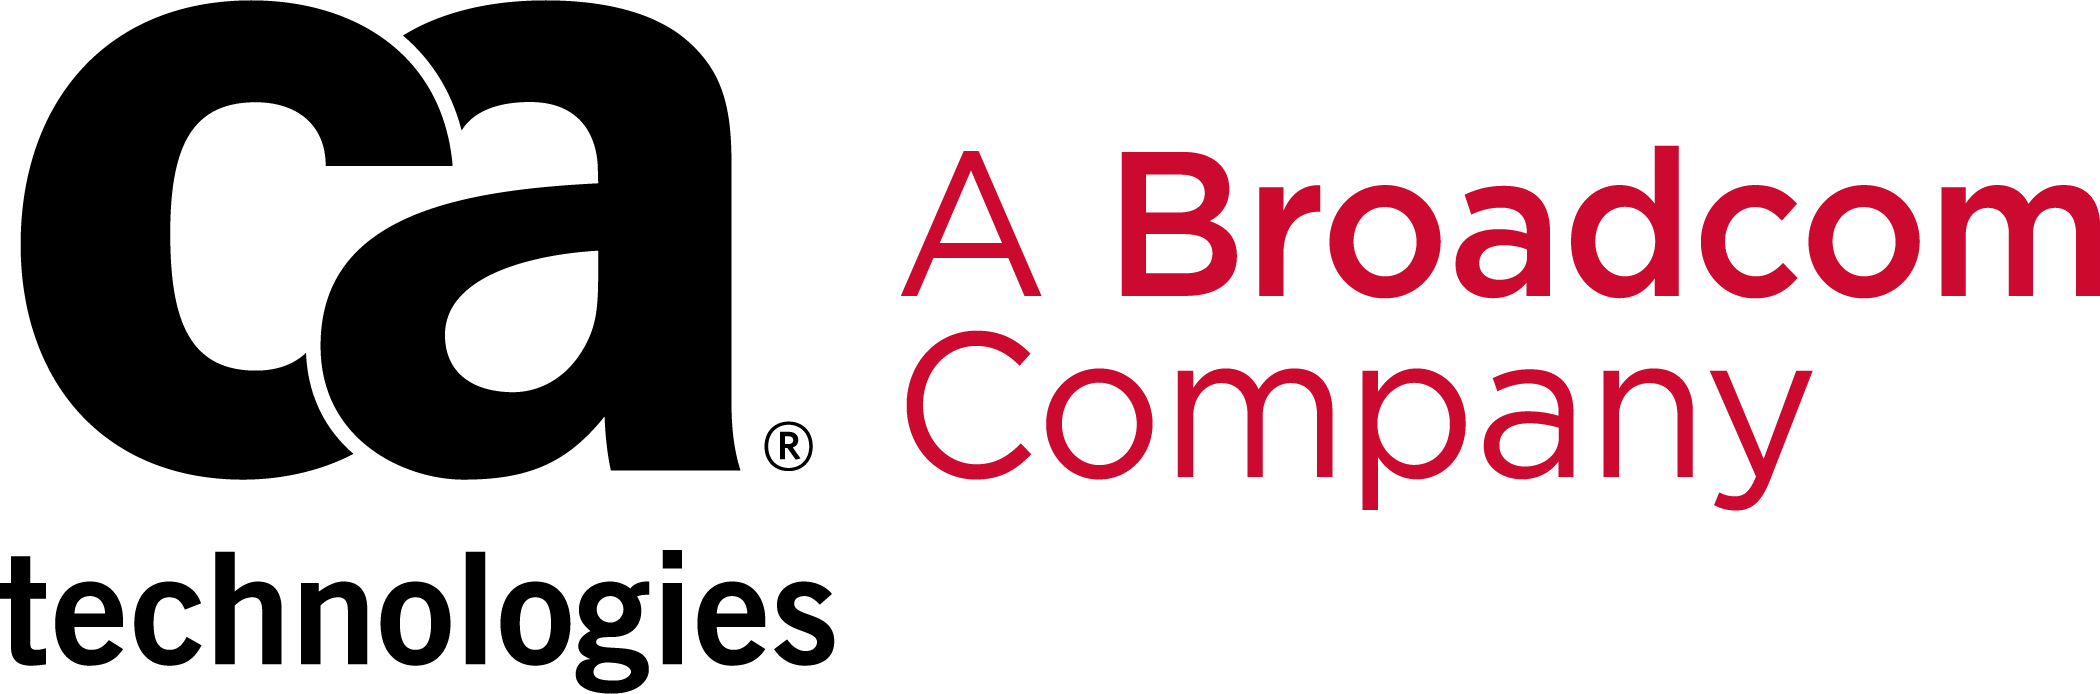 CA-Broadcom_Horizontal_red-black.png